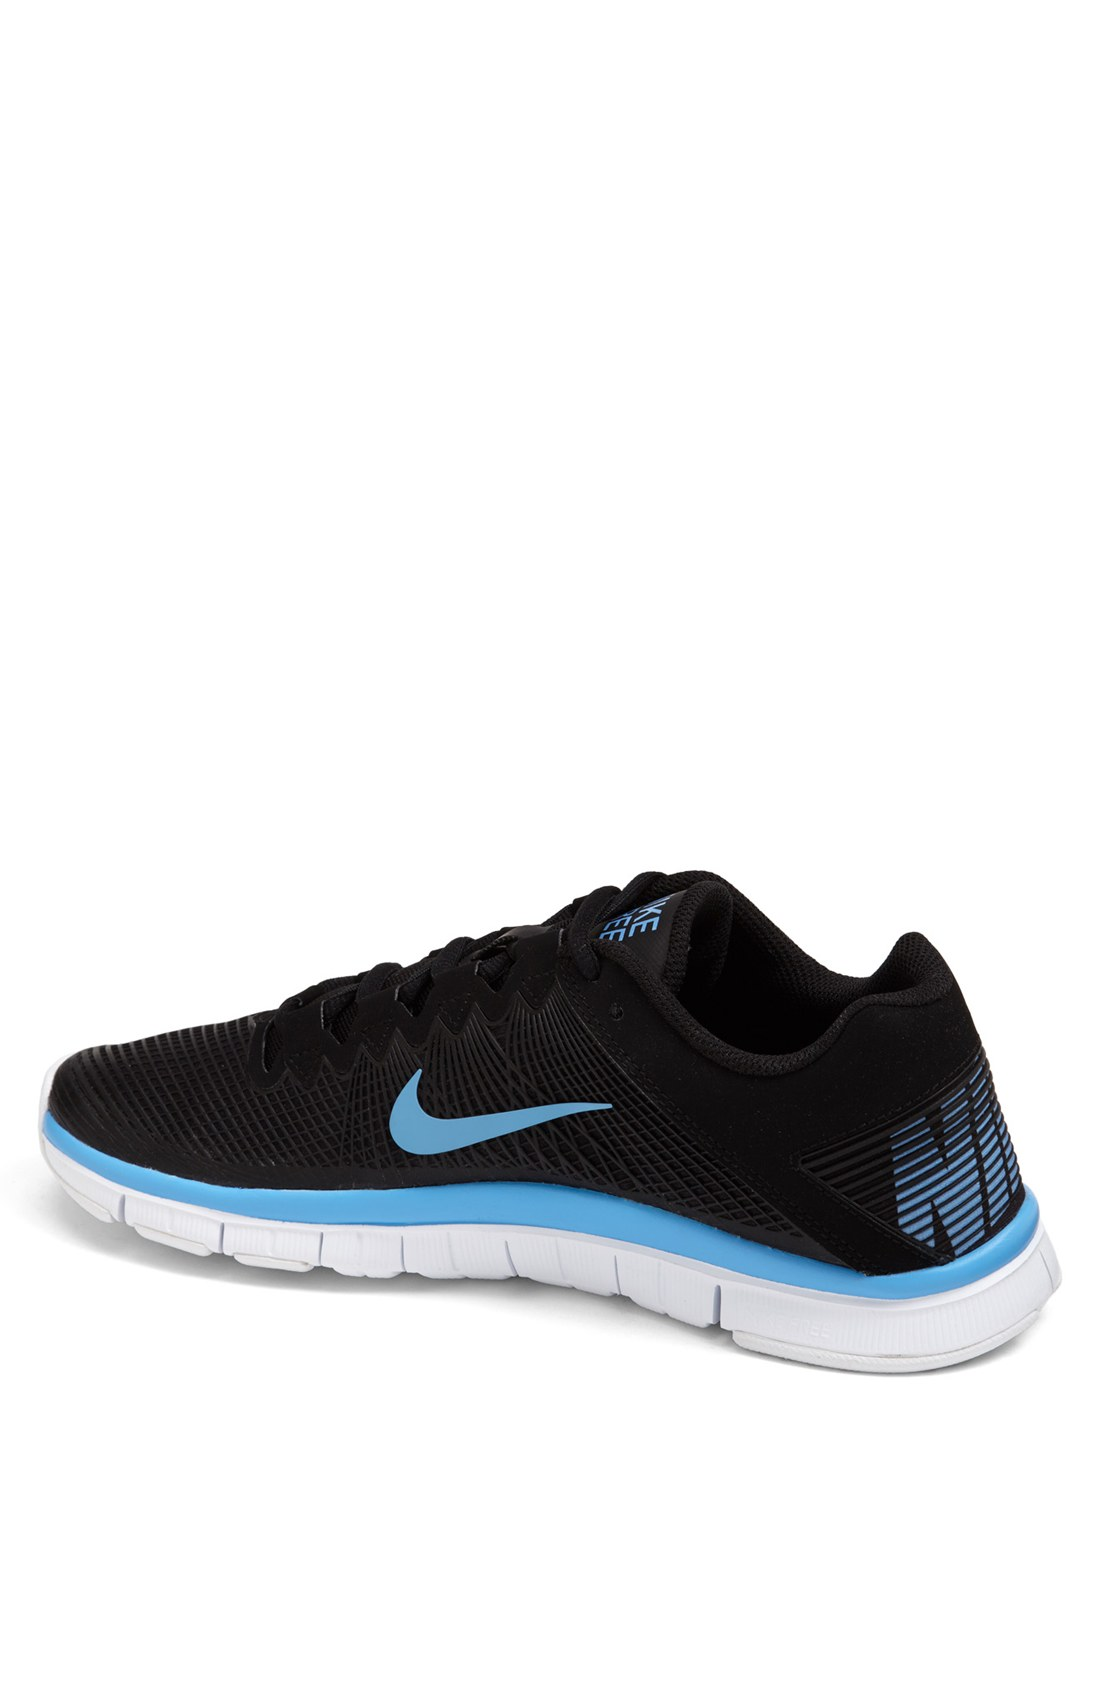 e6ff480bfd149 ... italy nike free trainer 30 training shoe in black for men black  university blue white lyst